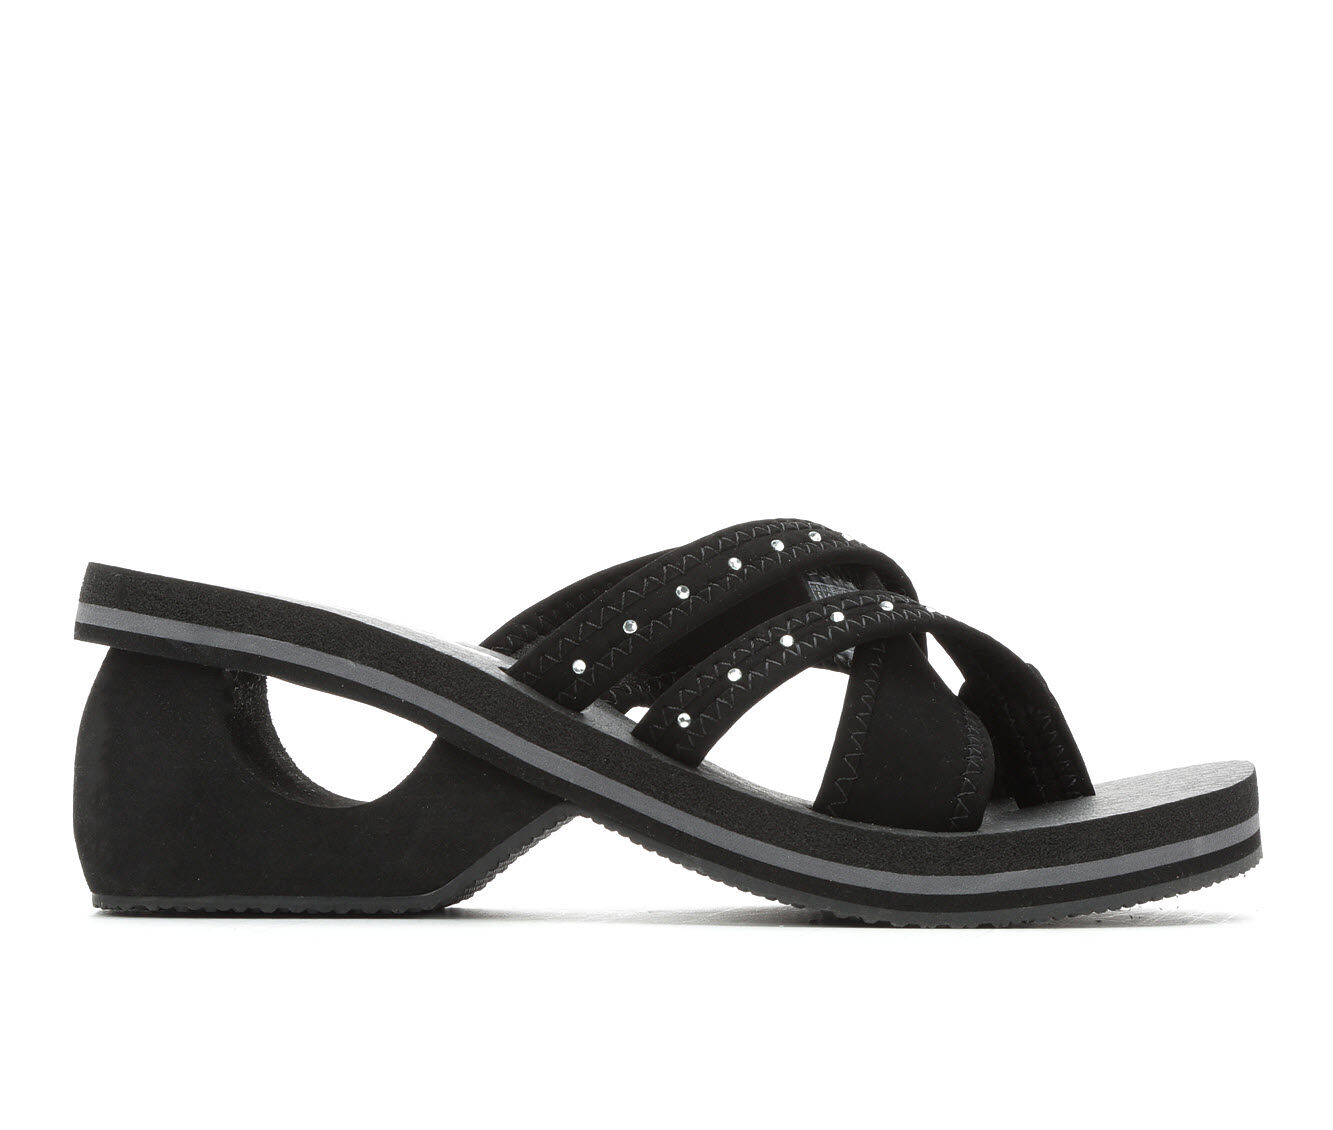 shop authentic new Women's Skechers Cali Cyclers Sole Legacy 31744 Sandals Black